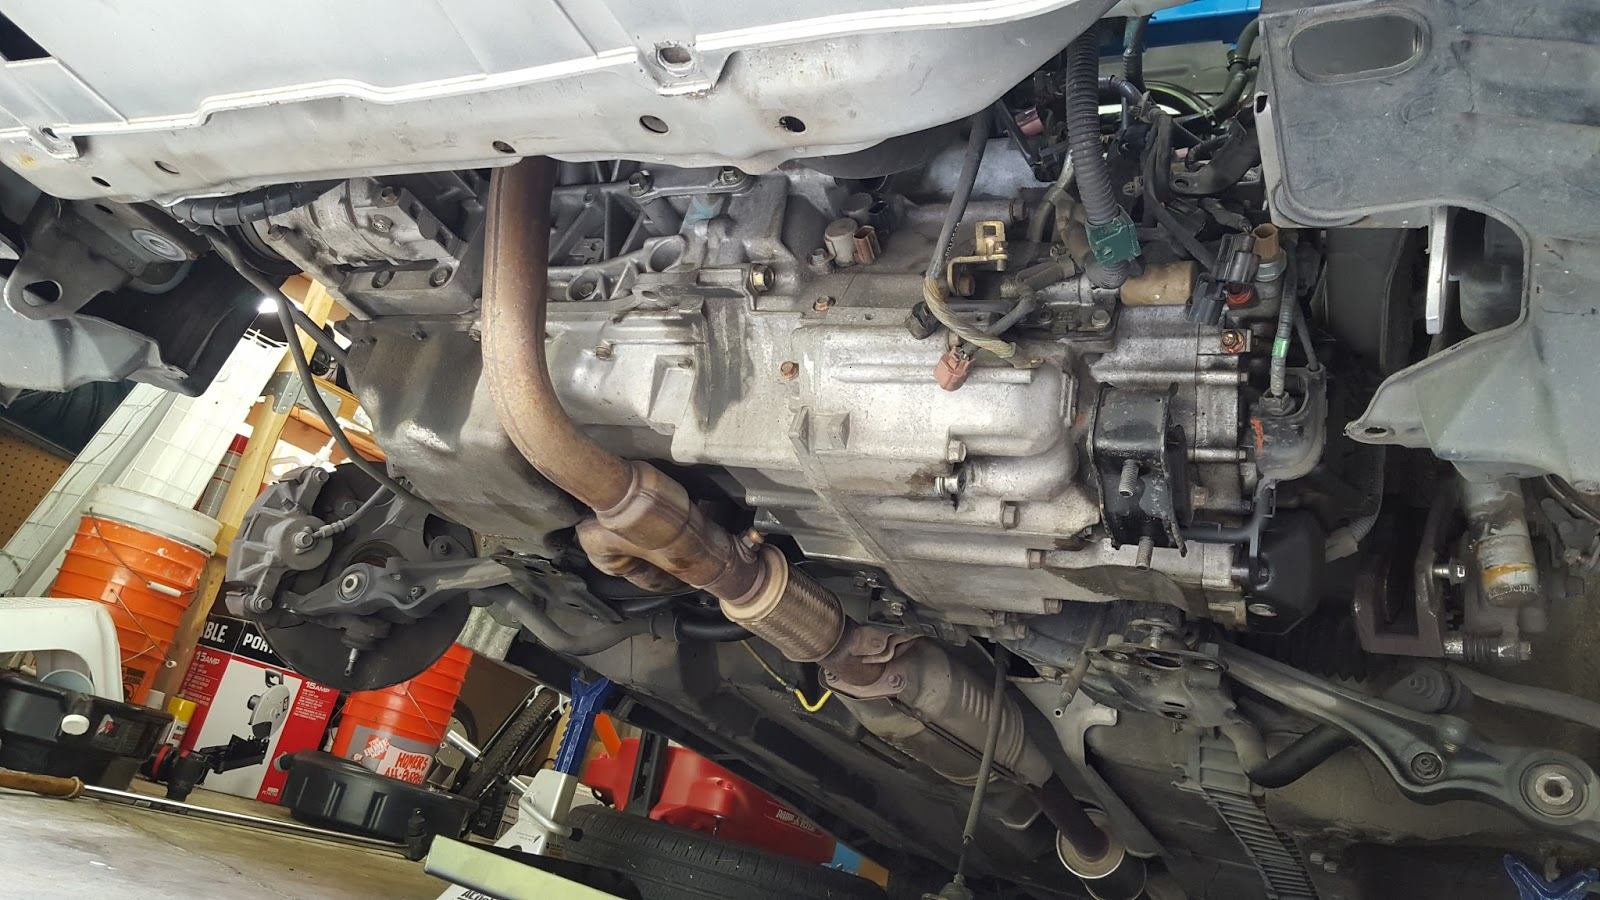 With the subframe out of the way, the transmission is supported with a jack  and all of the bolts connecting the case to the engine are removed.